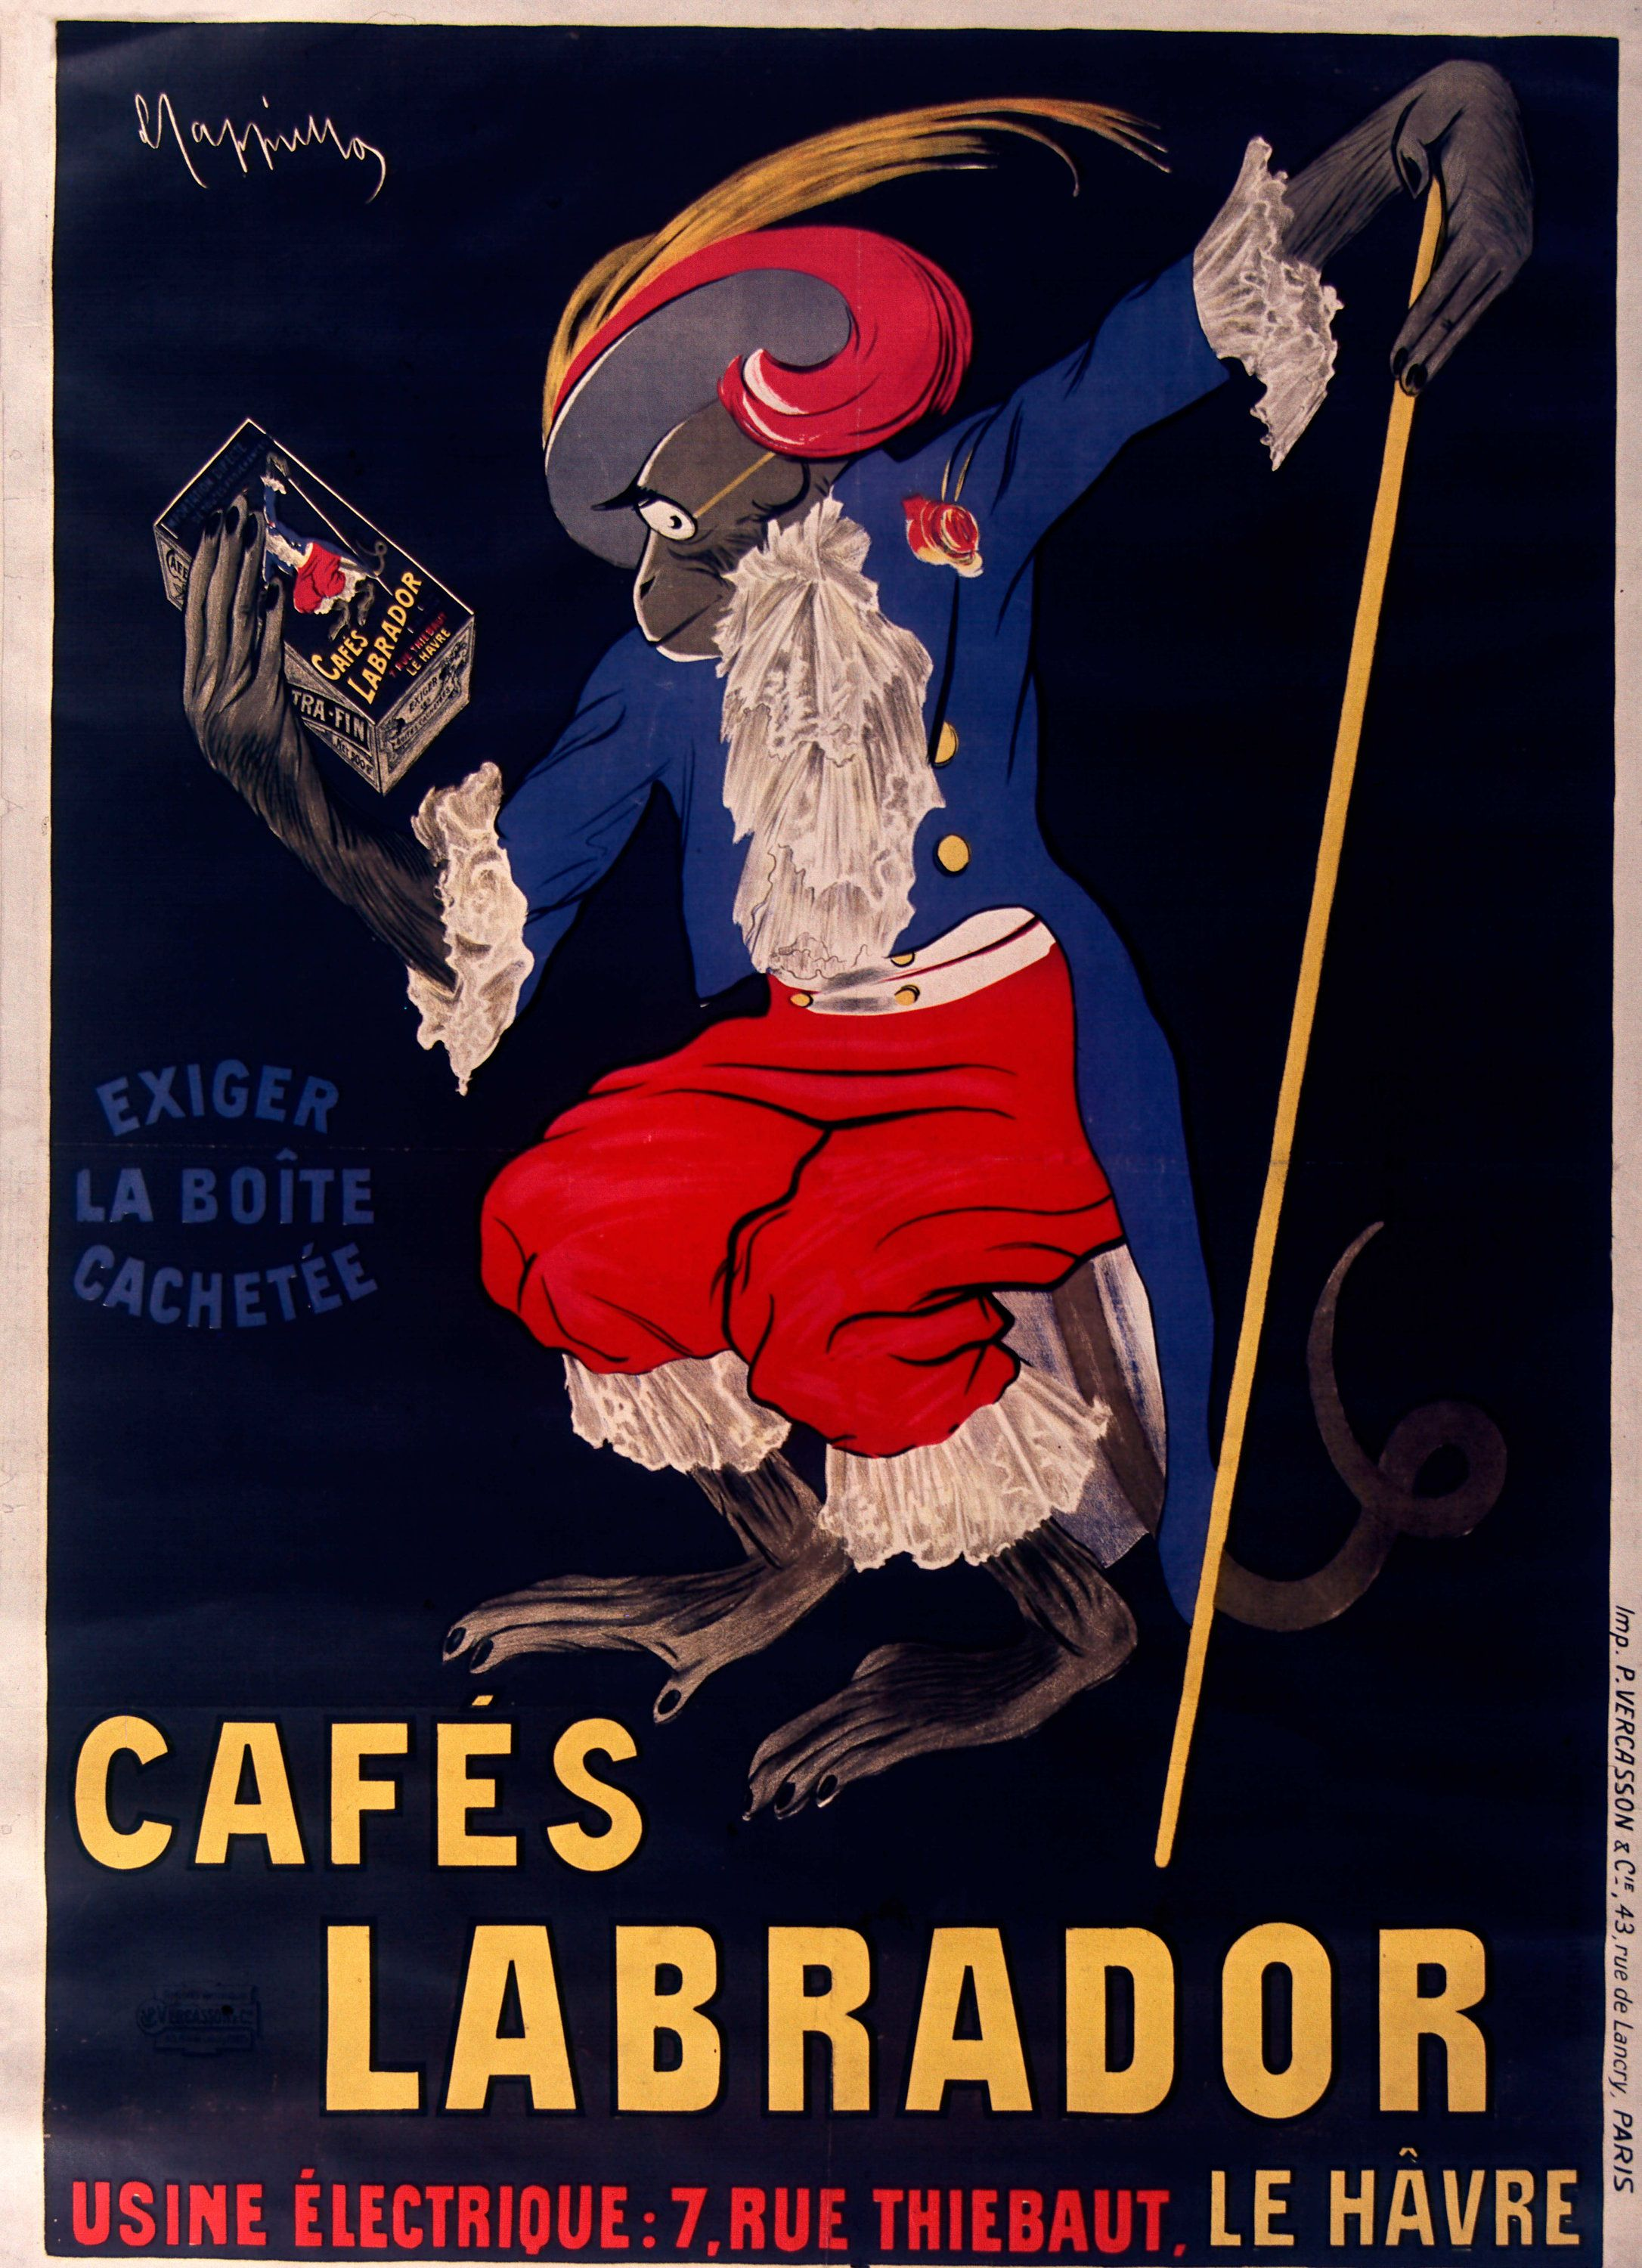 See The Latest Addition To My Shop Vintage Advertising Poster For Labrador Coffee Manufactured Vintage Posters Vintage Advertising Posters Leonetto Cappiello